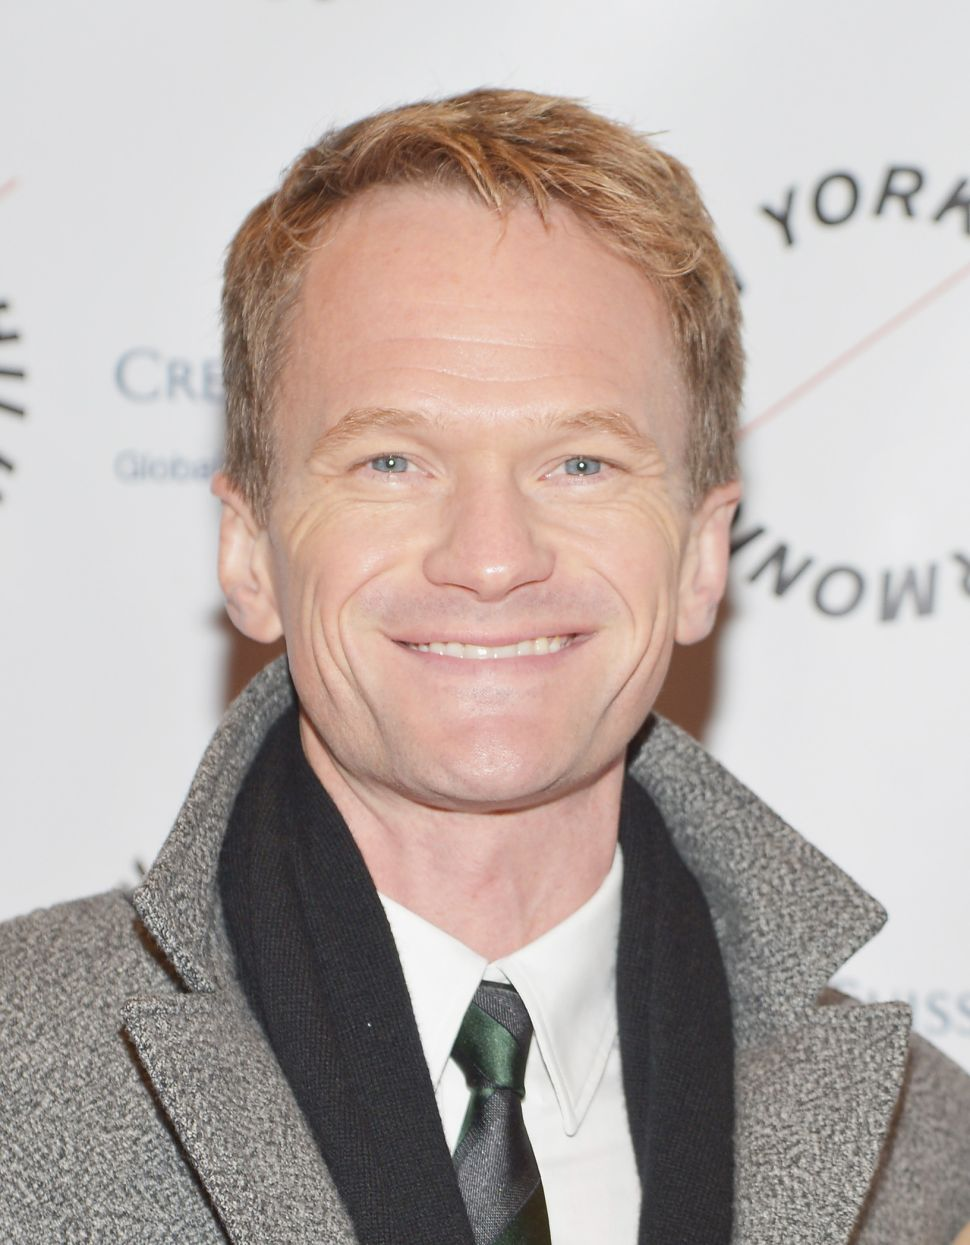 Neil Patrick Harris Says 'Late Show' Gig Would Be 'Asinine Amount of Work'